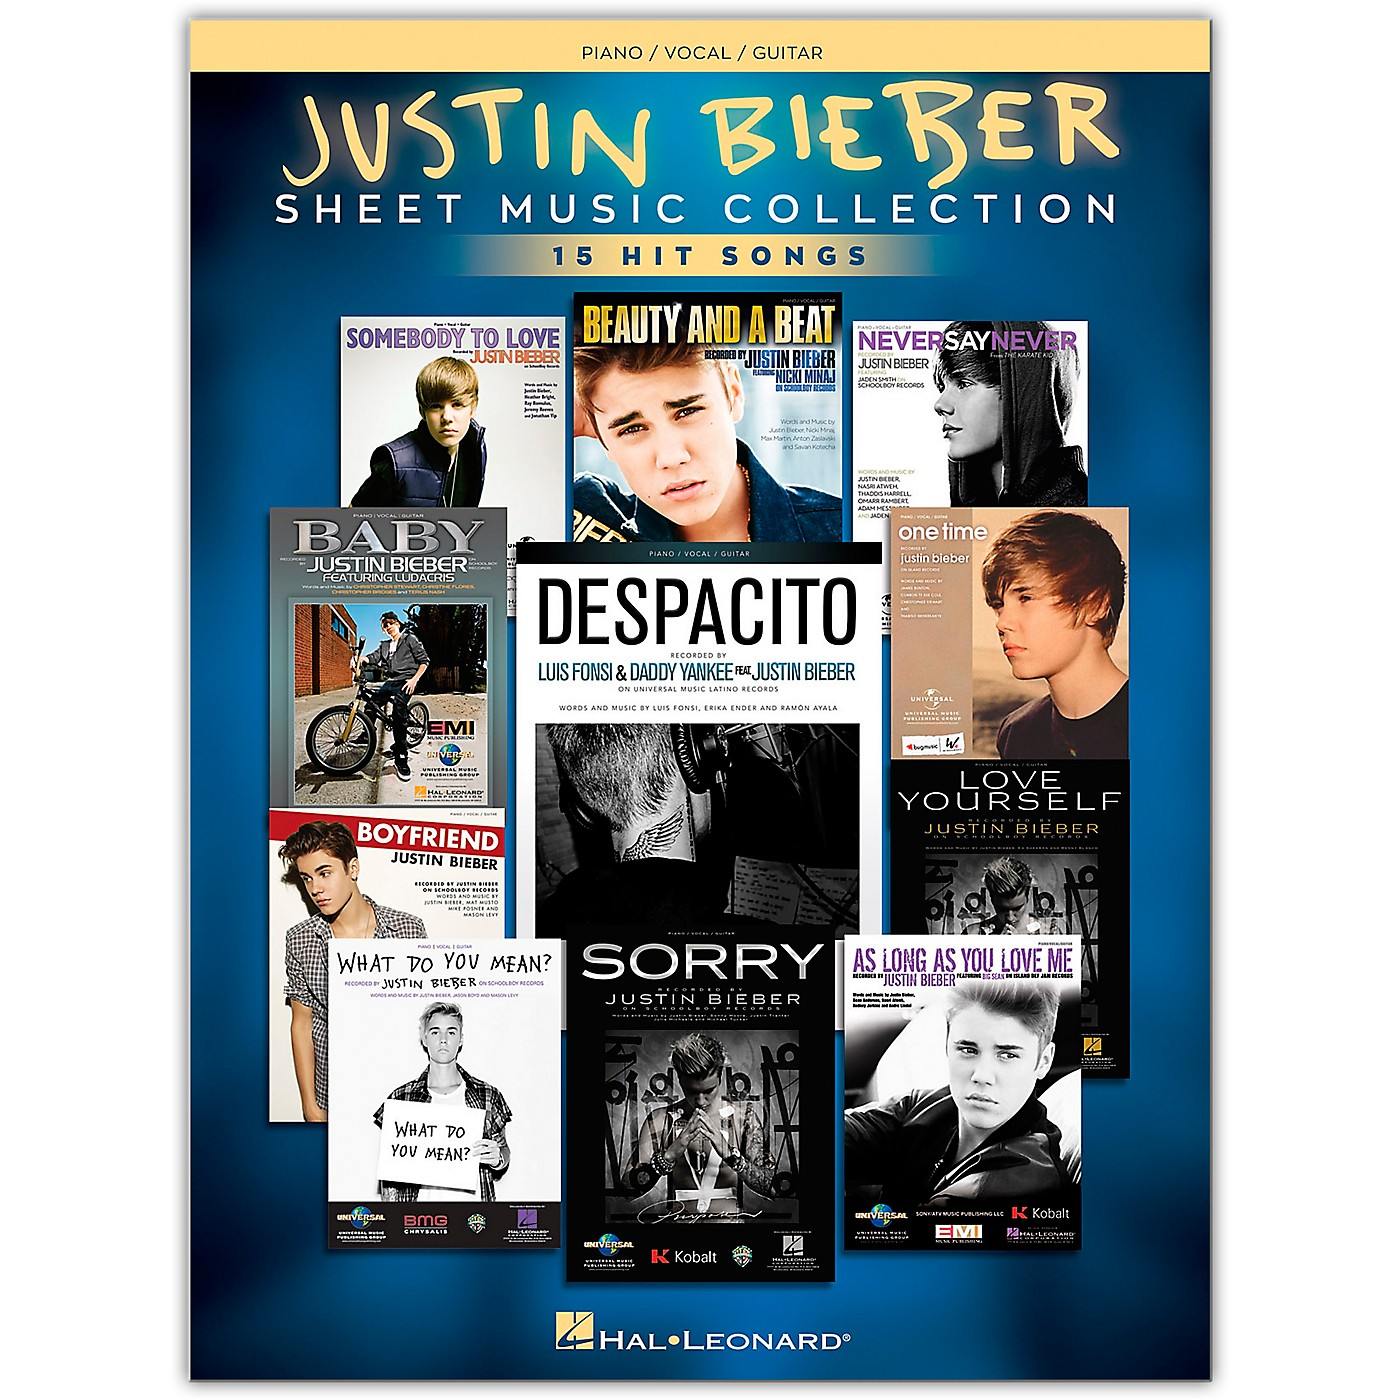 Hal Leonard Justin Bieber - Sheet Music Collection 17 Hit Songs Piano/Vocal/Guitar Songbook thumbnail